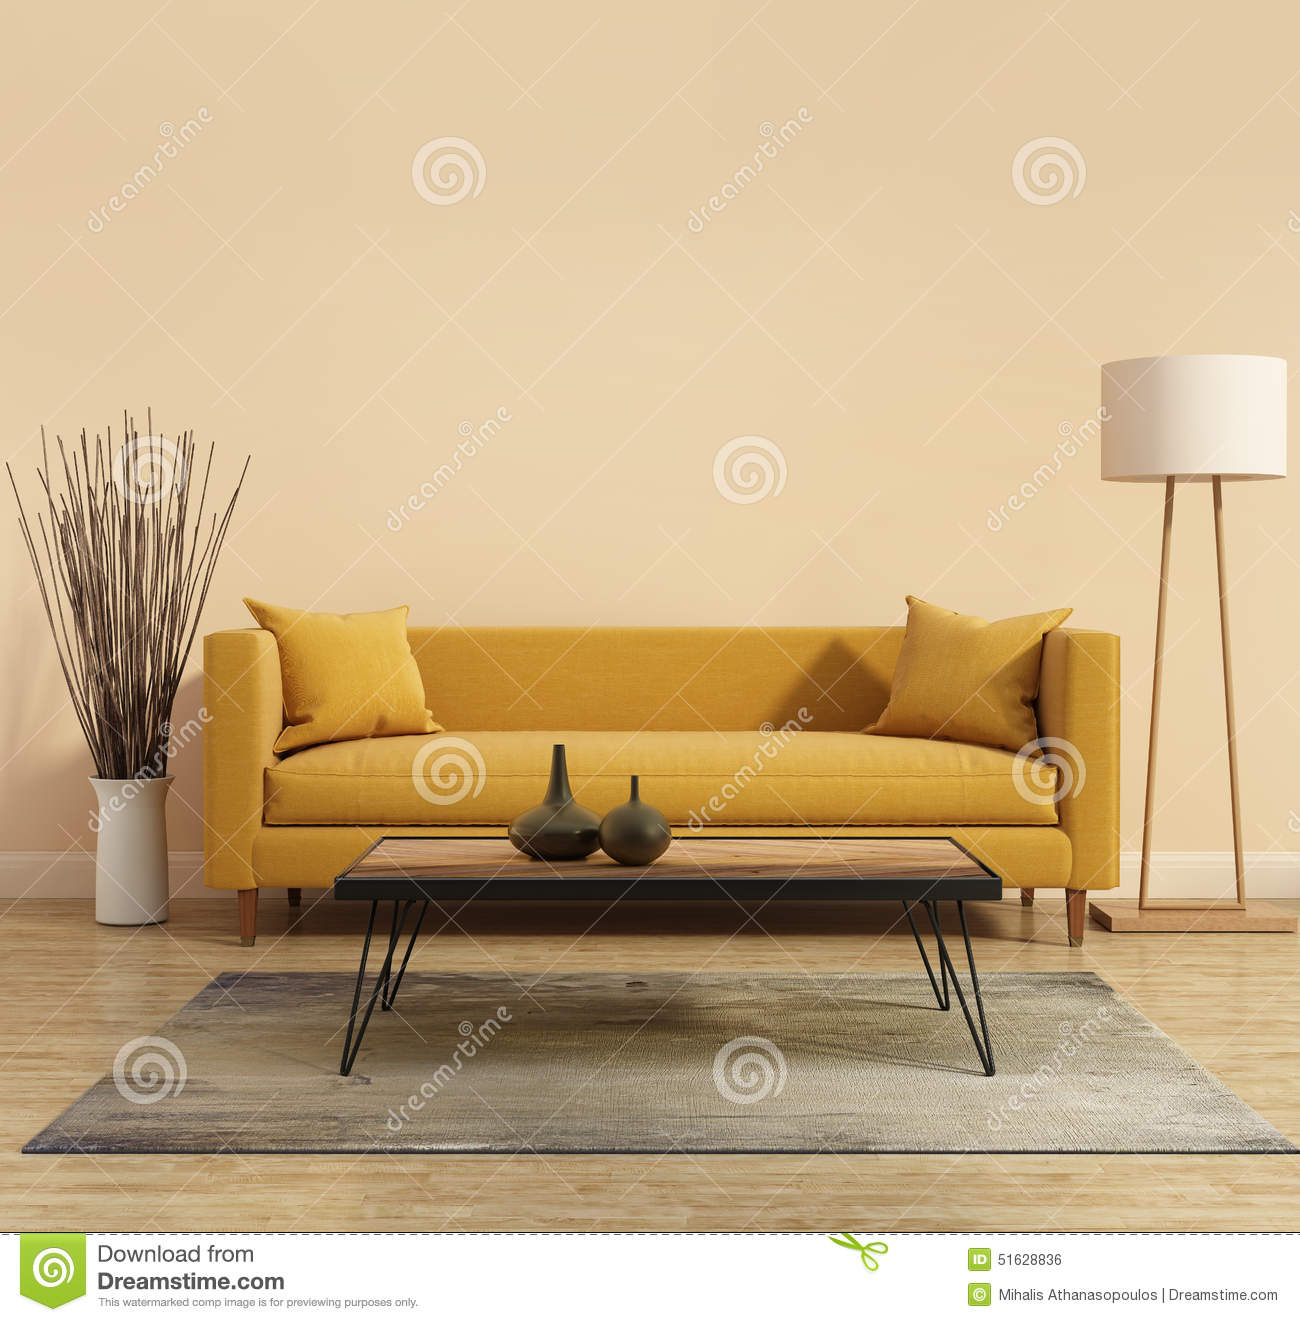 Modern Interior With A Yellow Sofa In The Living .